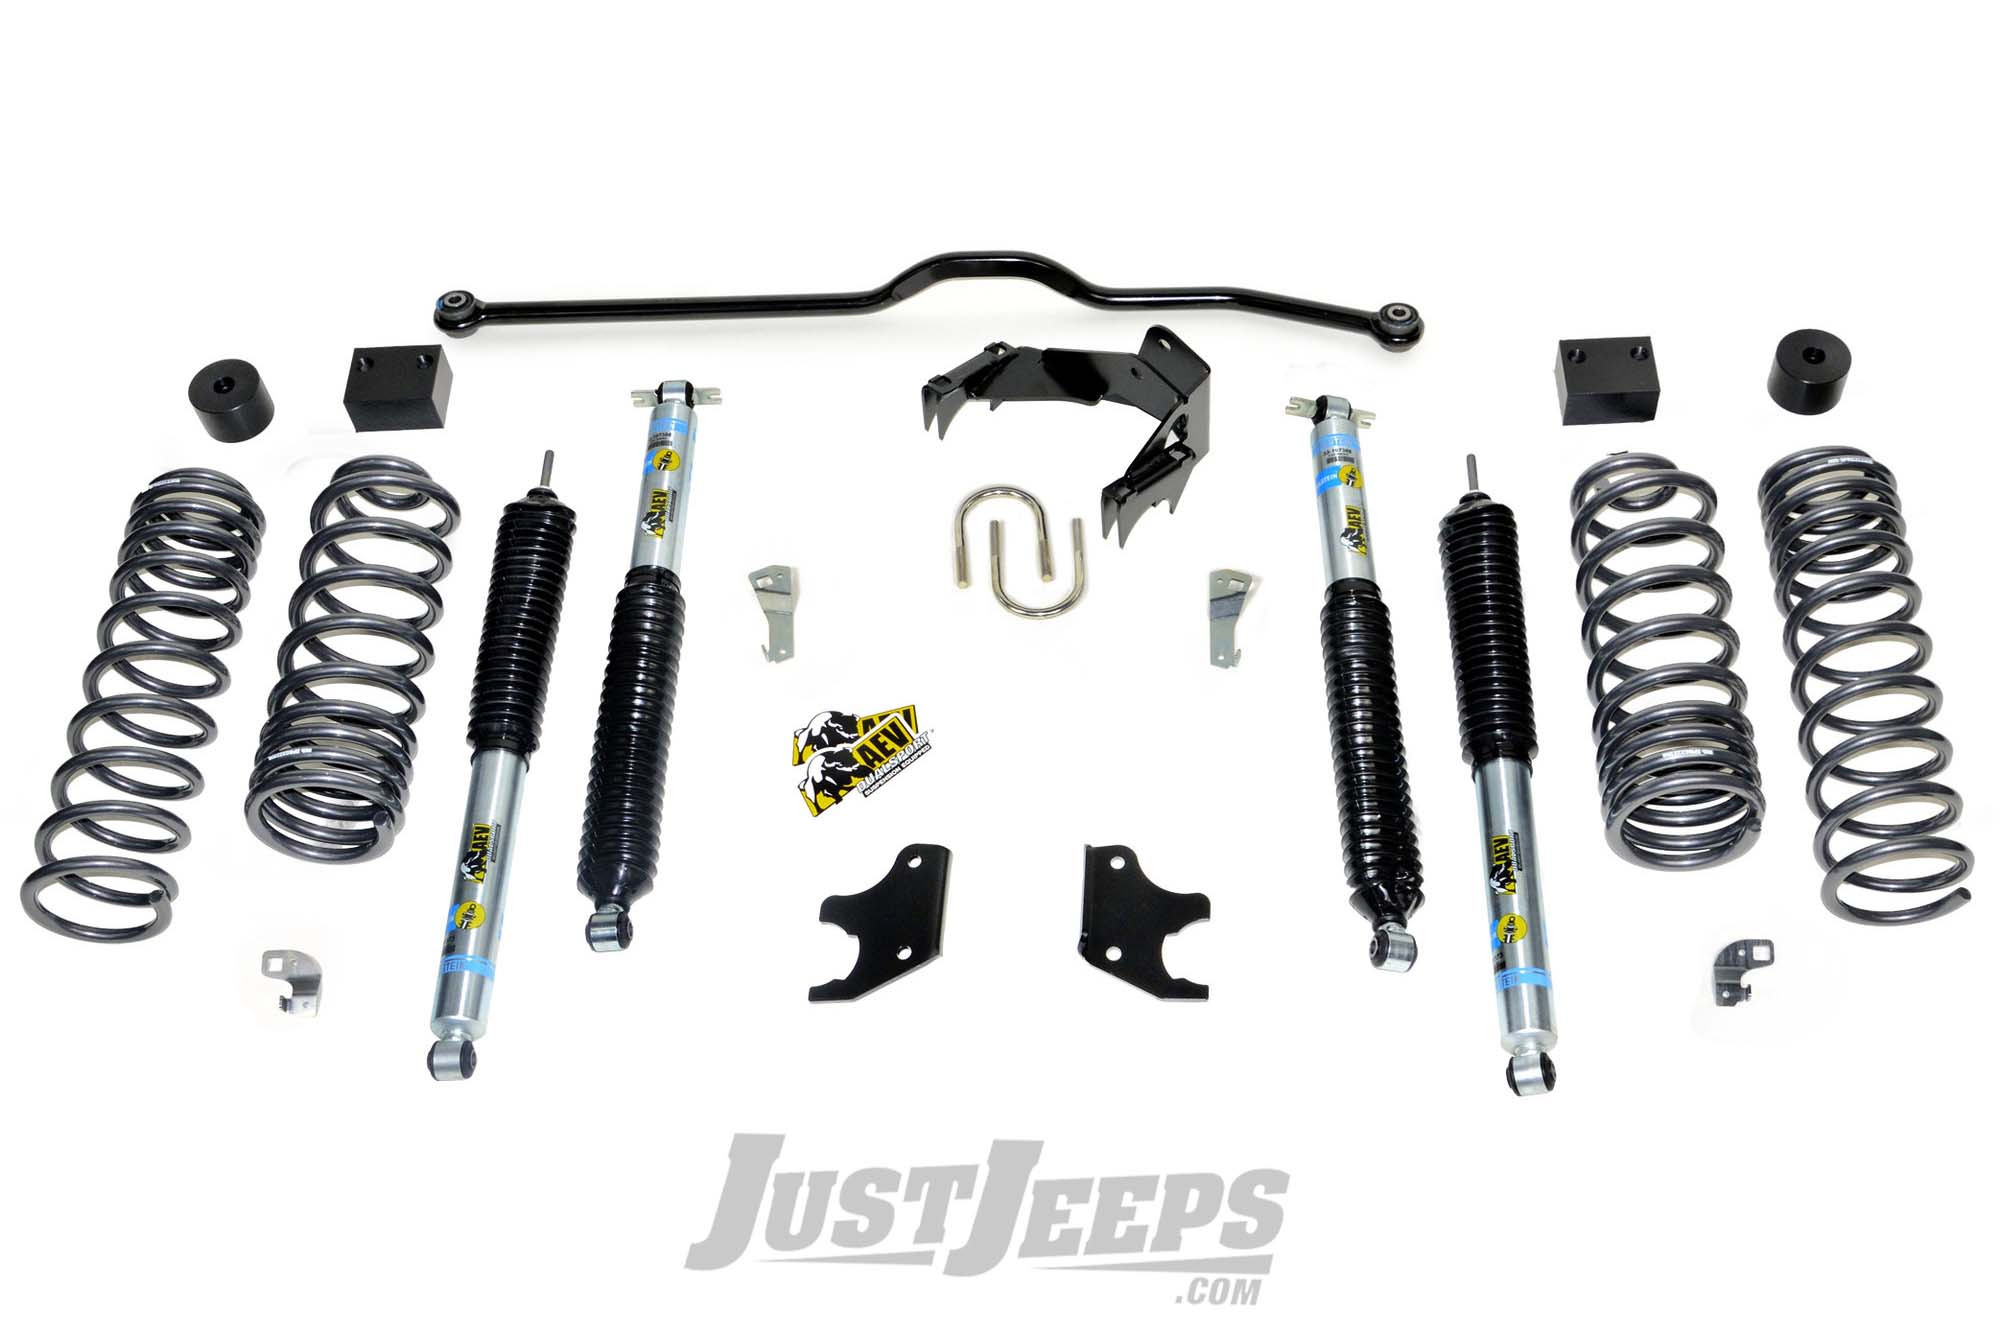 Just Jeeps Aev 2 5 Dualsport Xt Suspension System With